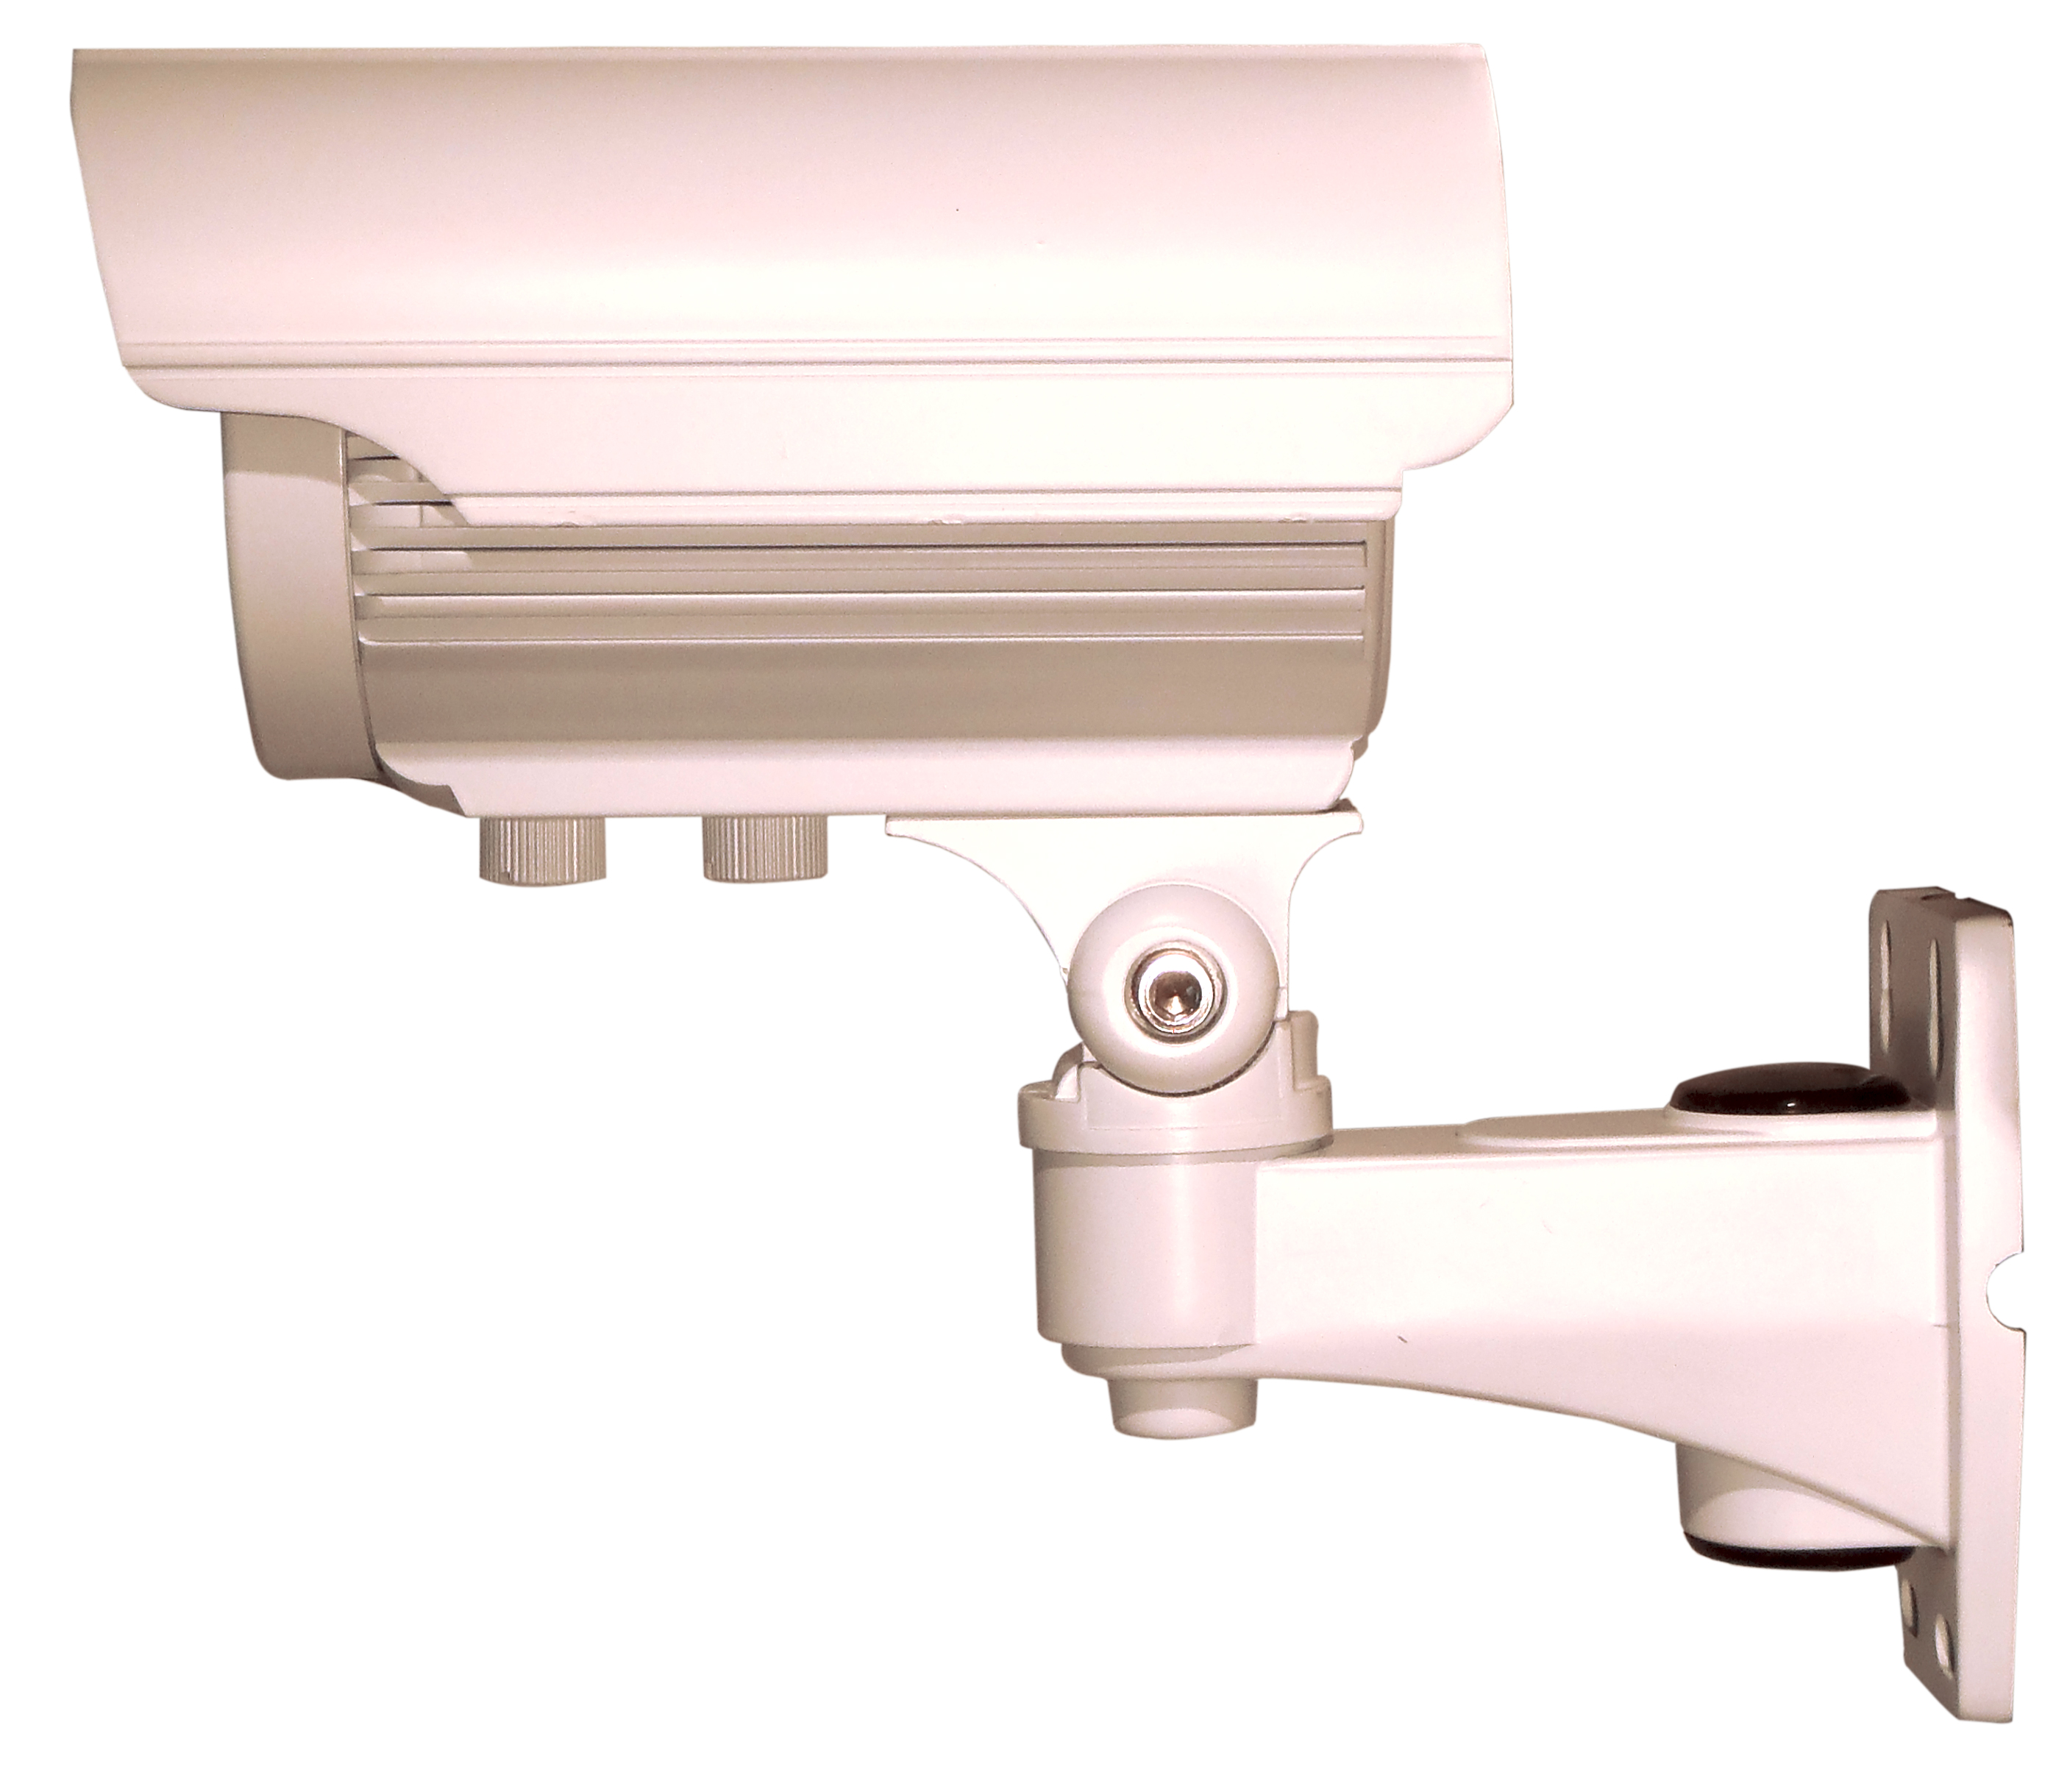 DBS 771W - 700TVL CCTV Bullet Security Camera - 1/3'' Sony Super HAD CCD II